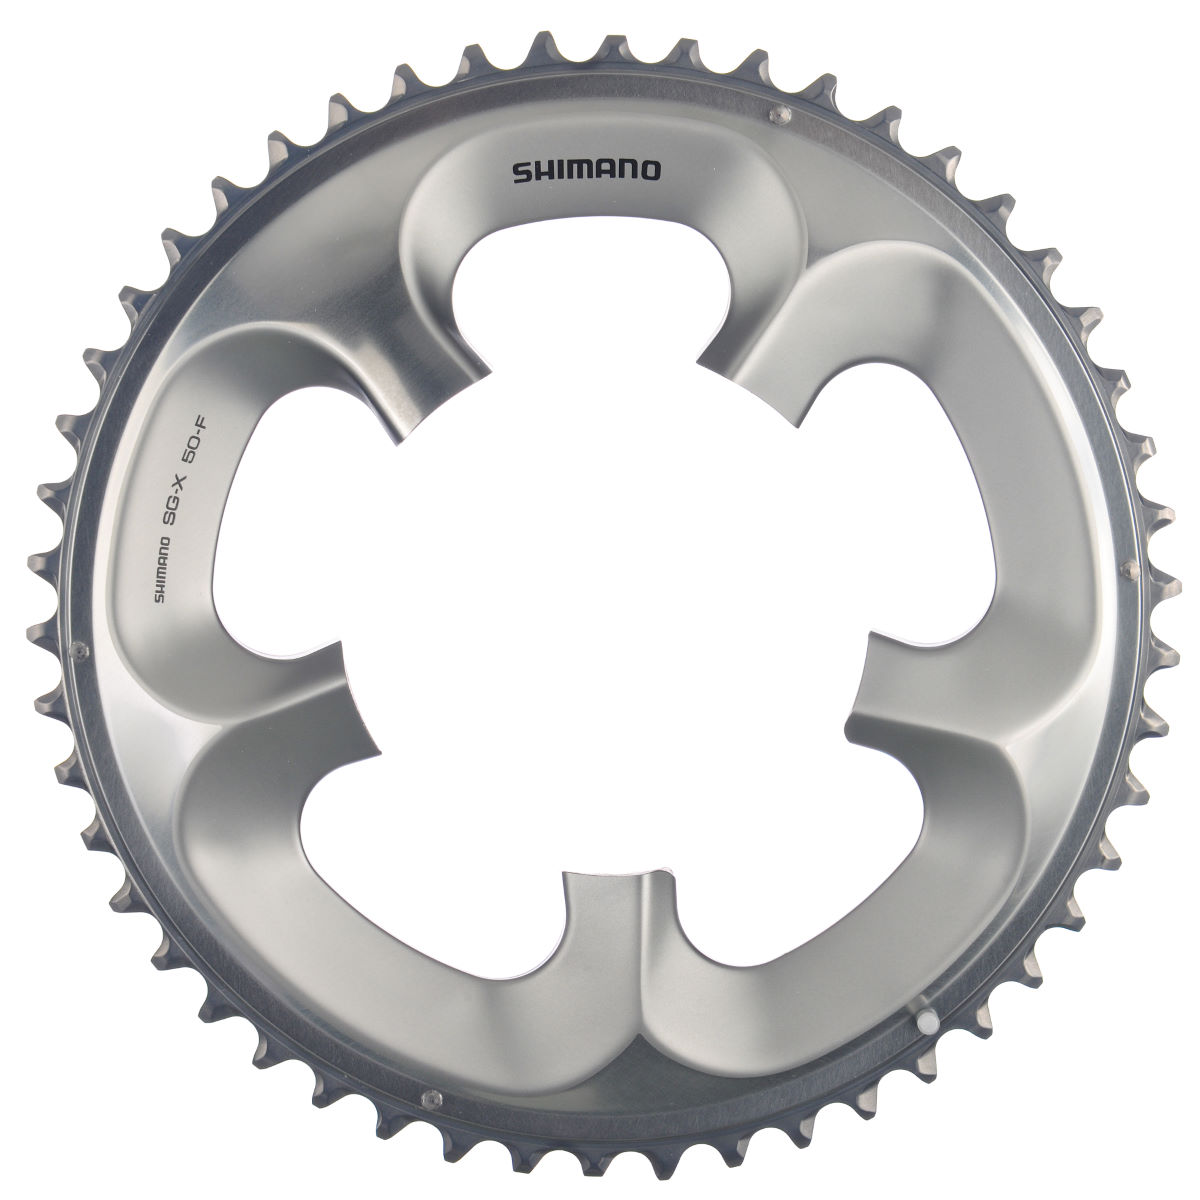 Shimano Ultegra Fc6750 10sp Compact Chainrings - 50t 10 Speed Silver